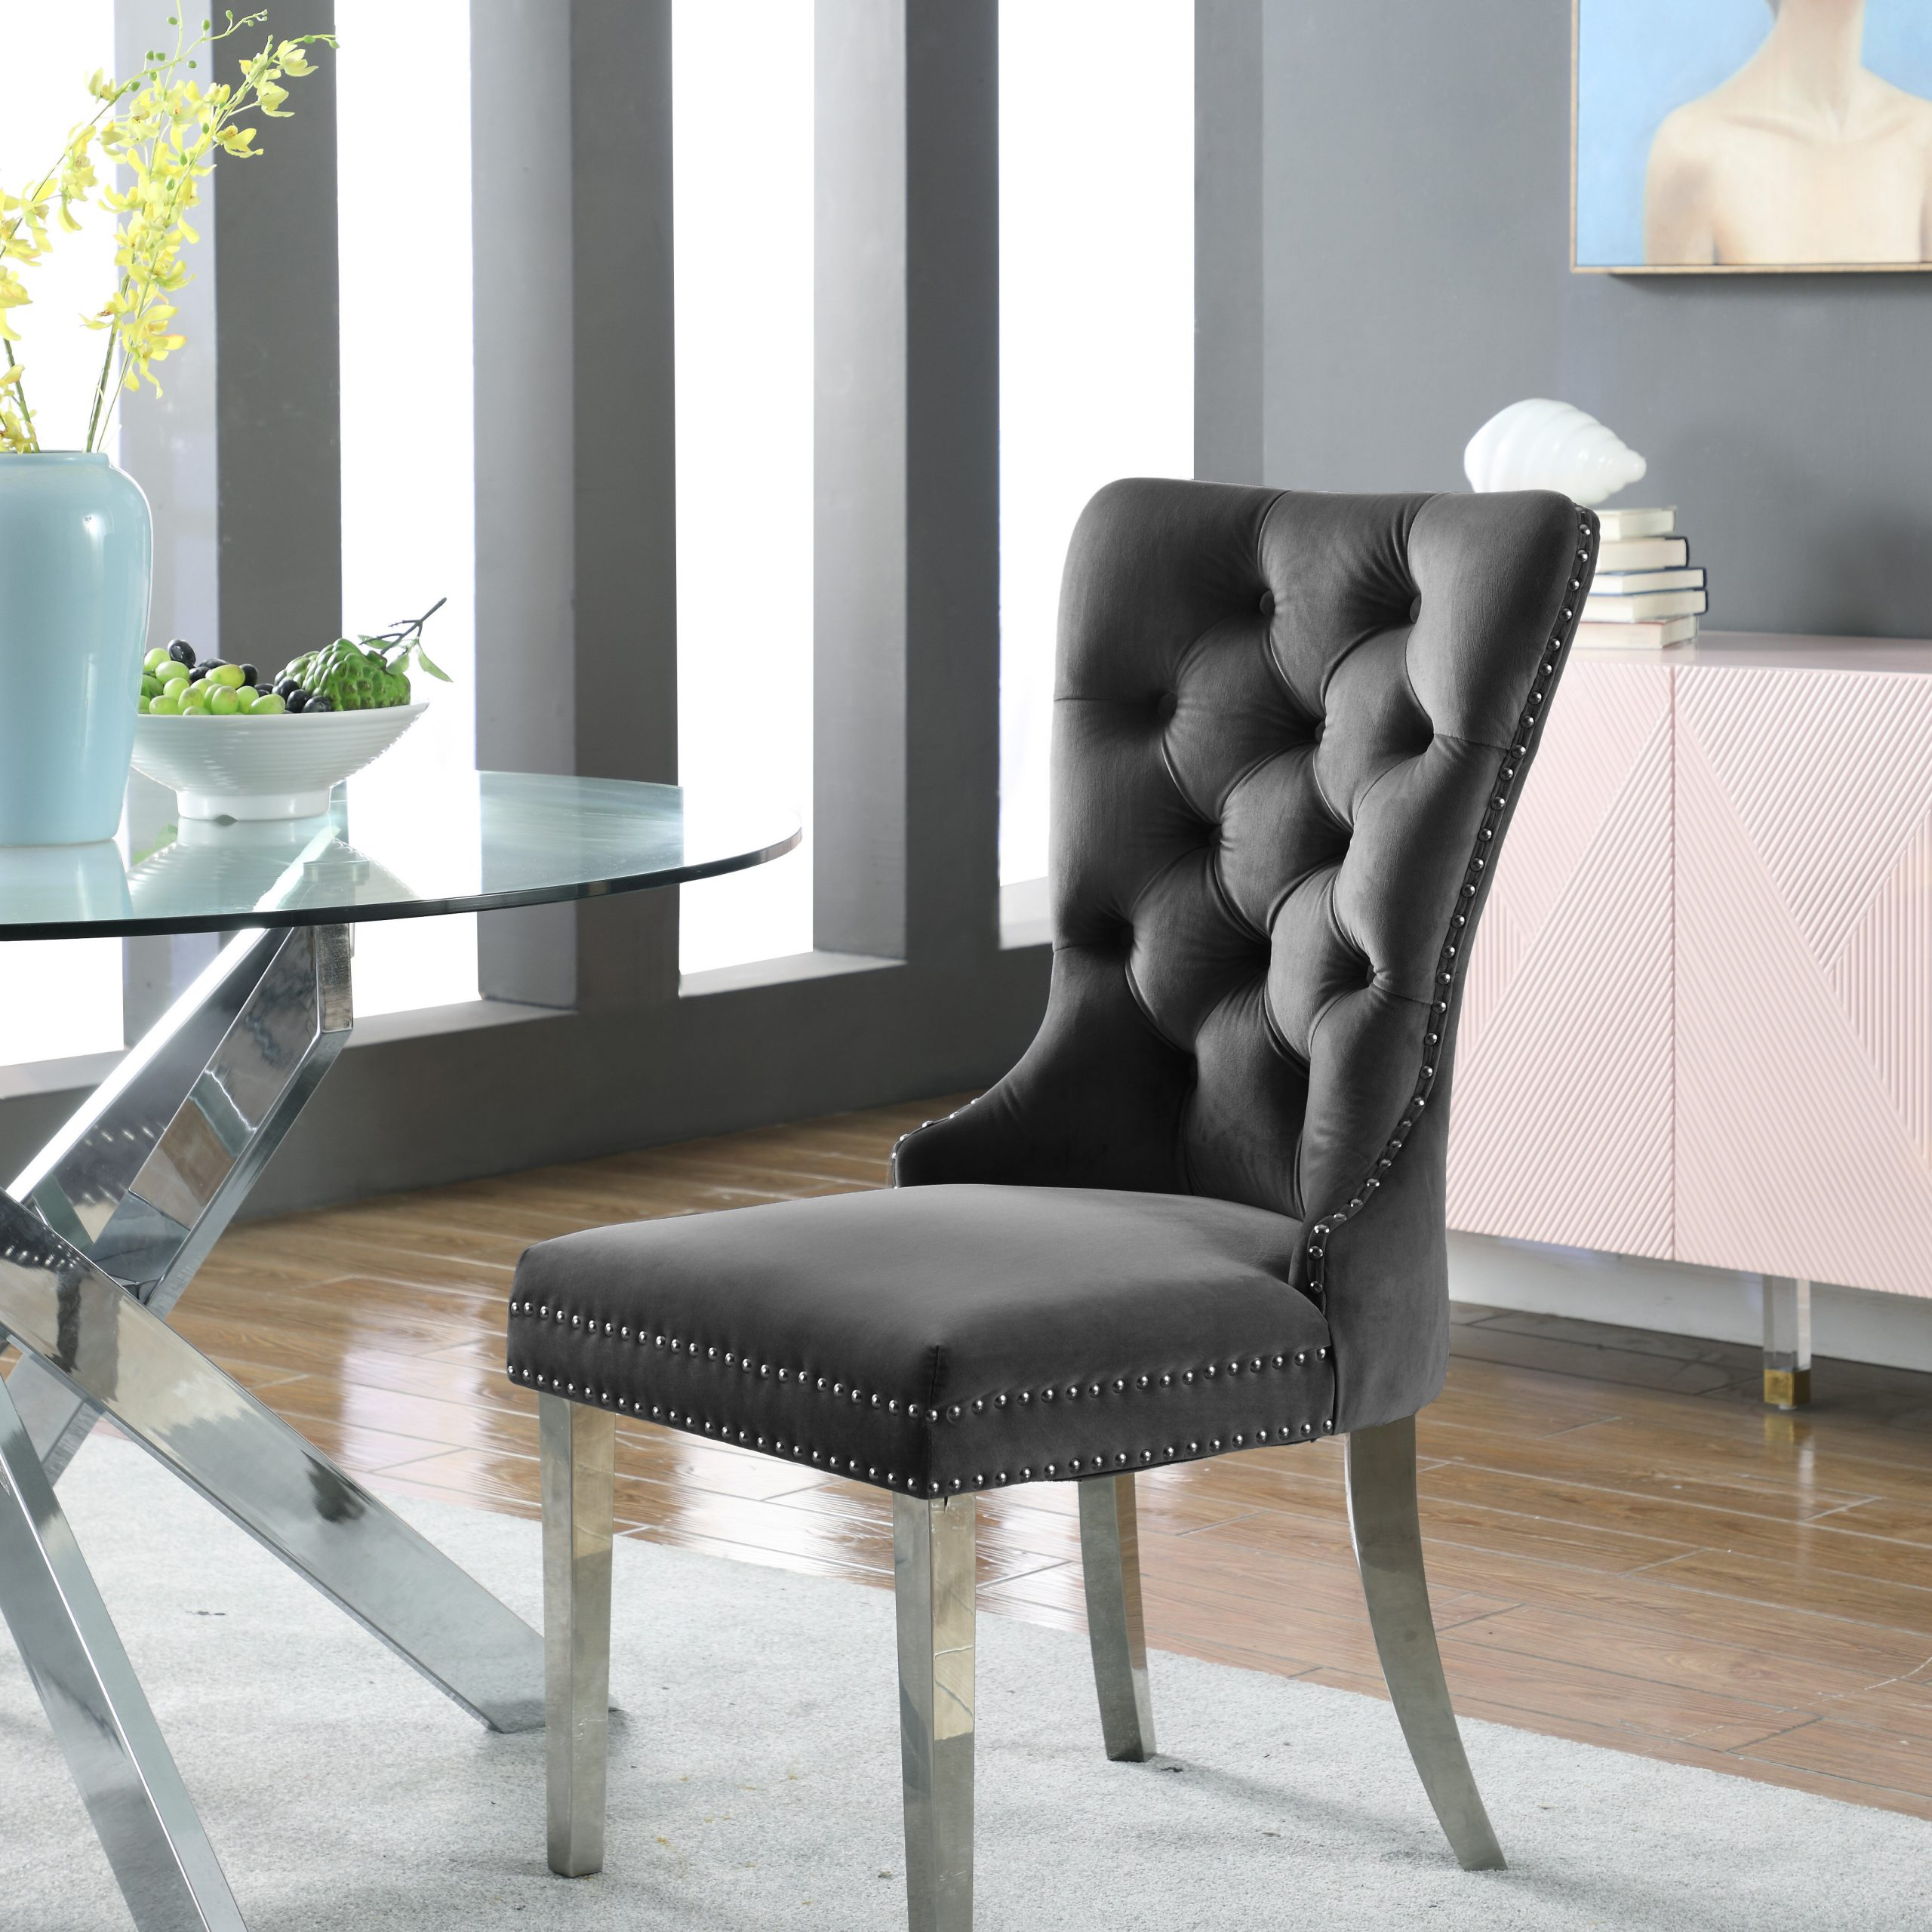 Tufted Dining Chairs | Wayfair With Regard To Madison Avenue Tufted Cotton Upholstered Dining Chairs (Set Of 2) (View 4 of 15)